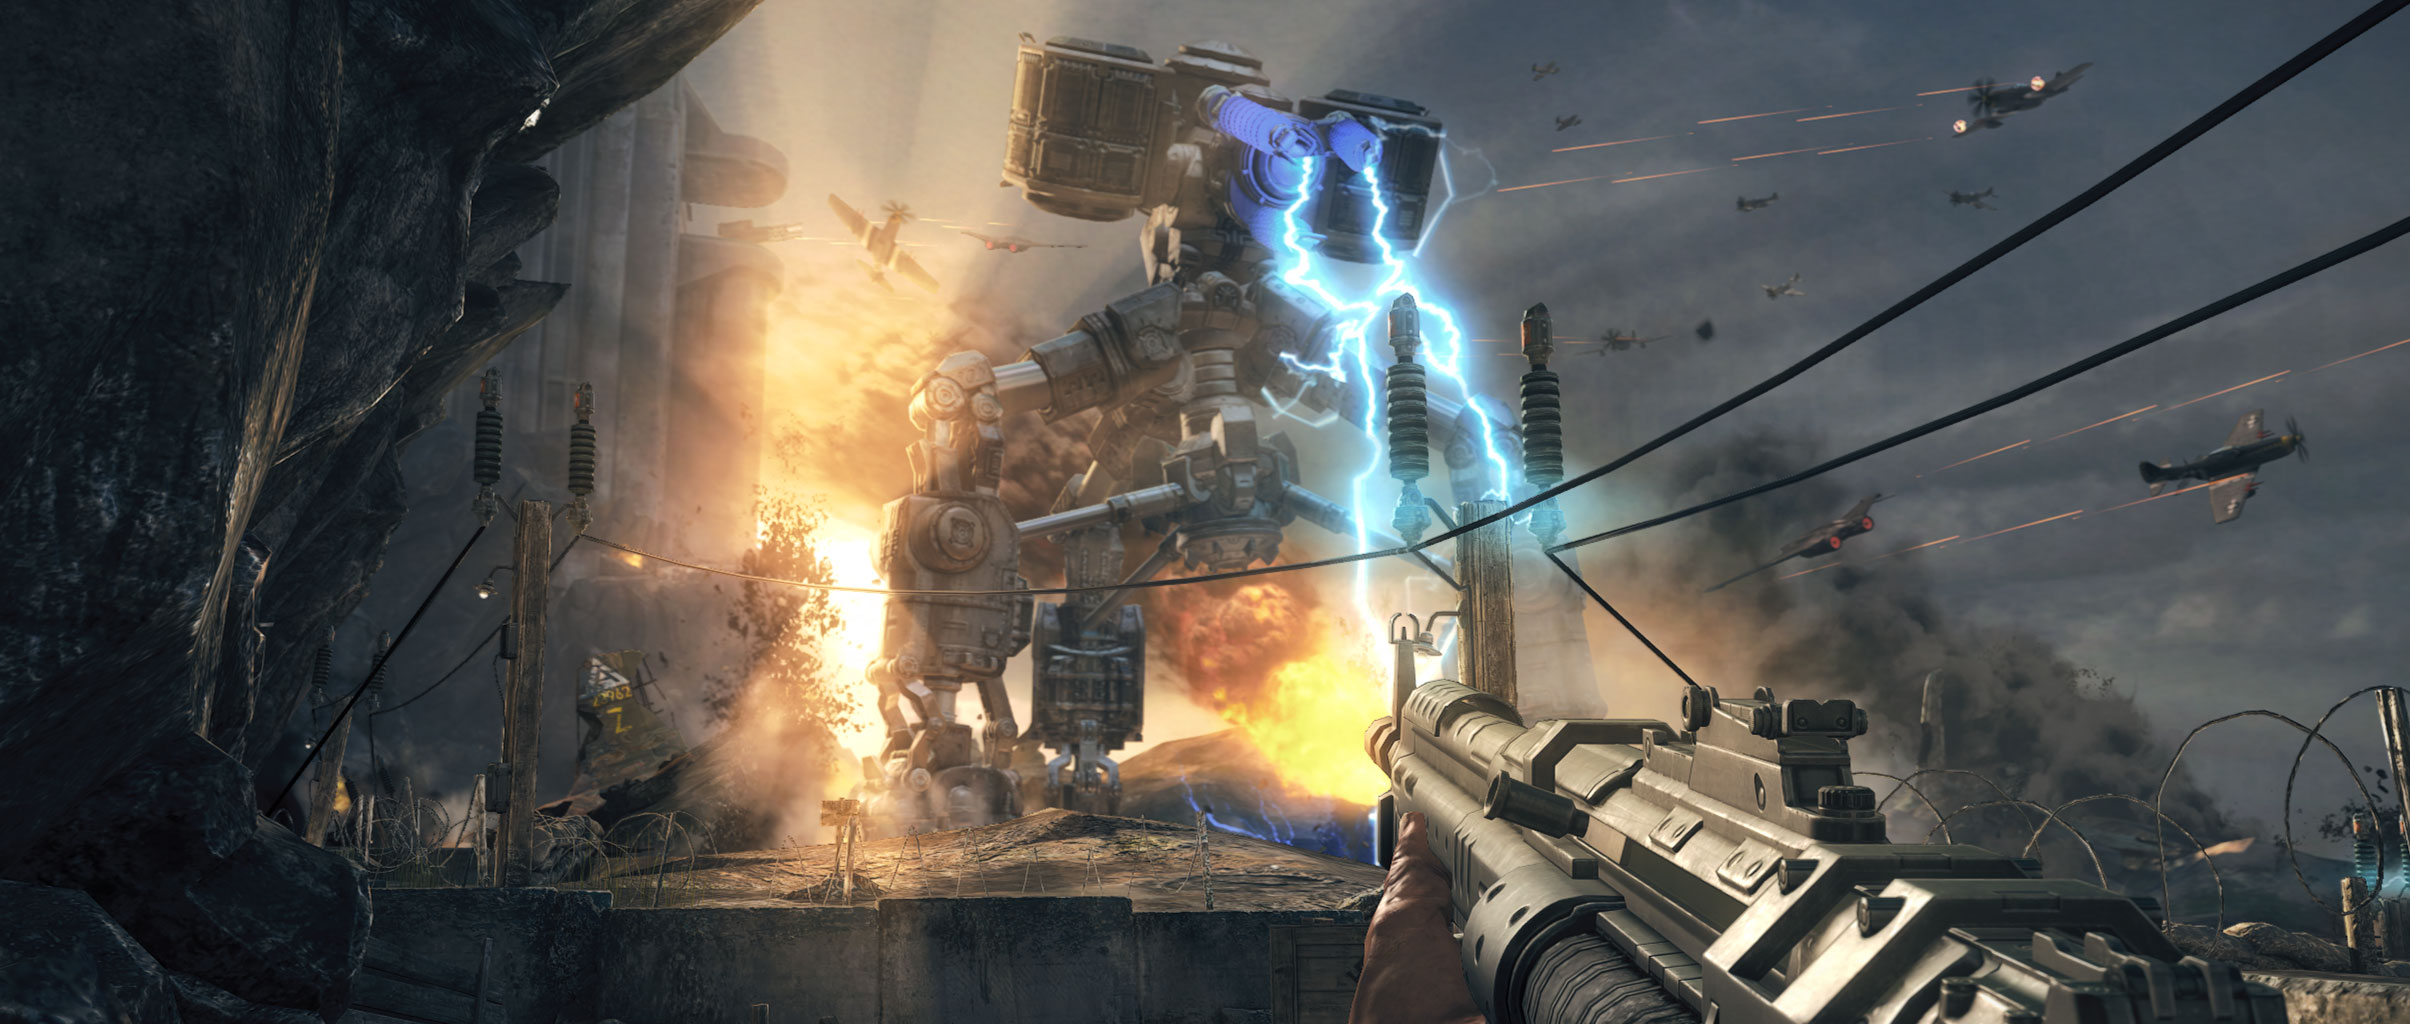 Wolfenstein: The New Order's first hours offer Nazi-killing thrills, chilling horrors